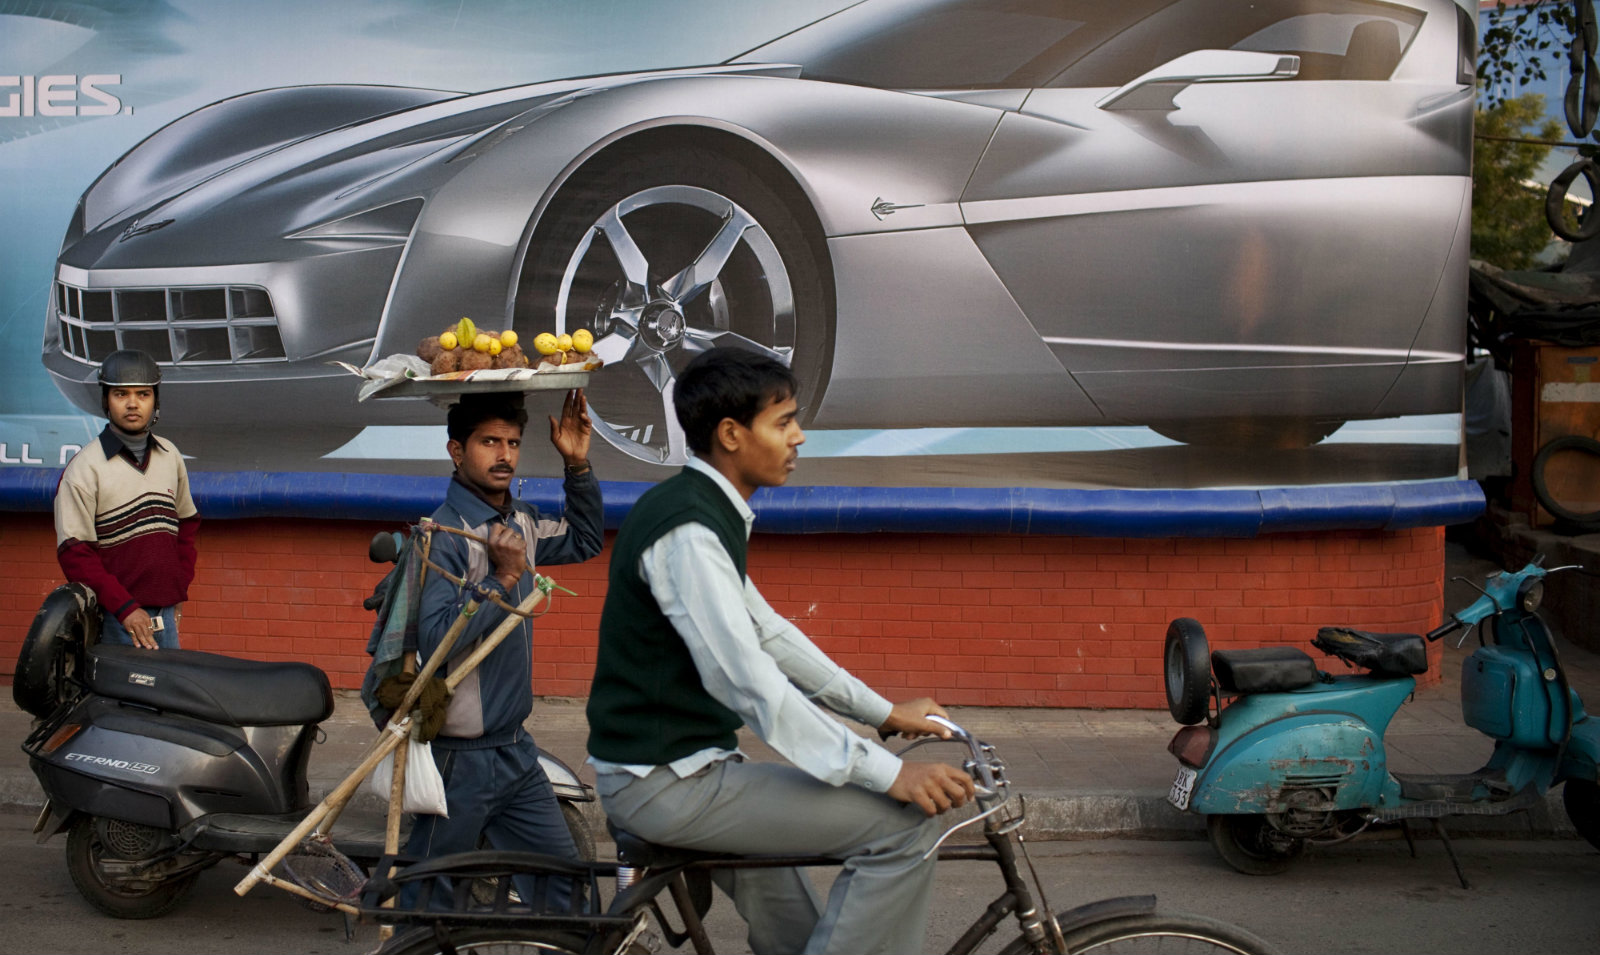 Indians pass a billboard advertisement for an American sports car in New Delhi, India, Wednesday, Jan. 25, 2012. Sales of automobiles in the world's largest democracy have steadily increased increased in recent years with the growth of the burgeoning middle class.